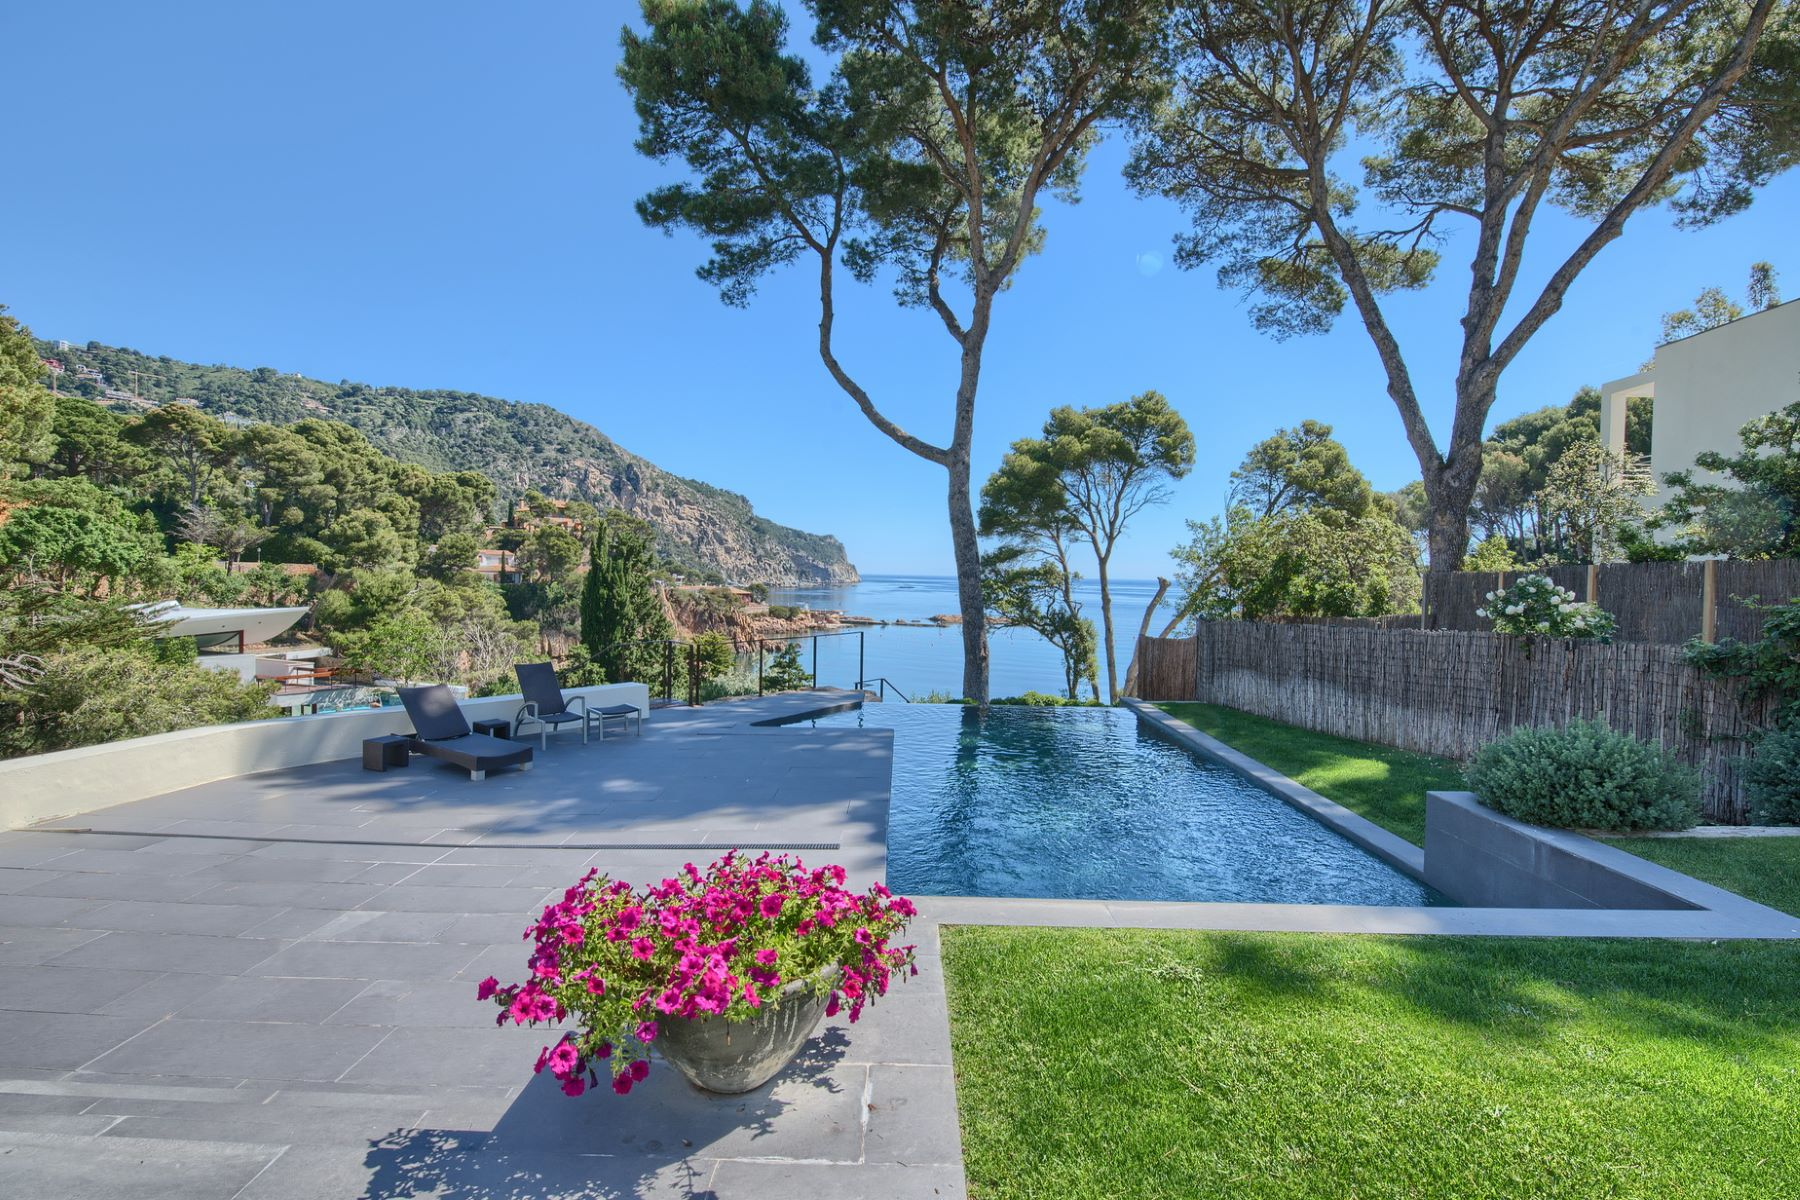 Single Family Homes for Sale at Magnificent modern sea front villa for sale in Aiguablava Begur, Costa Brava 17255 Spain